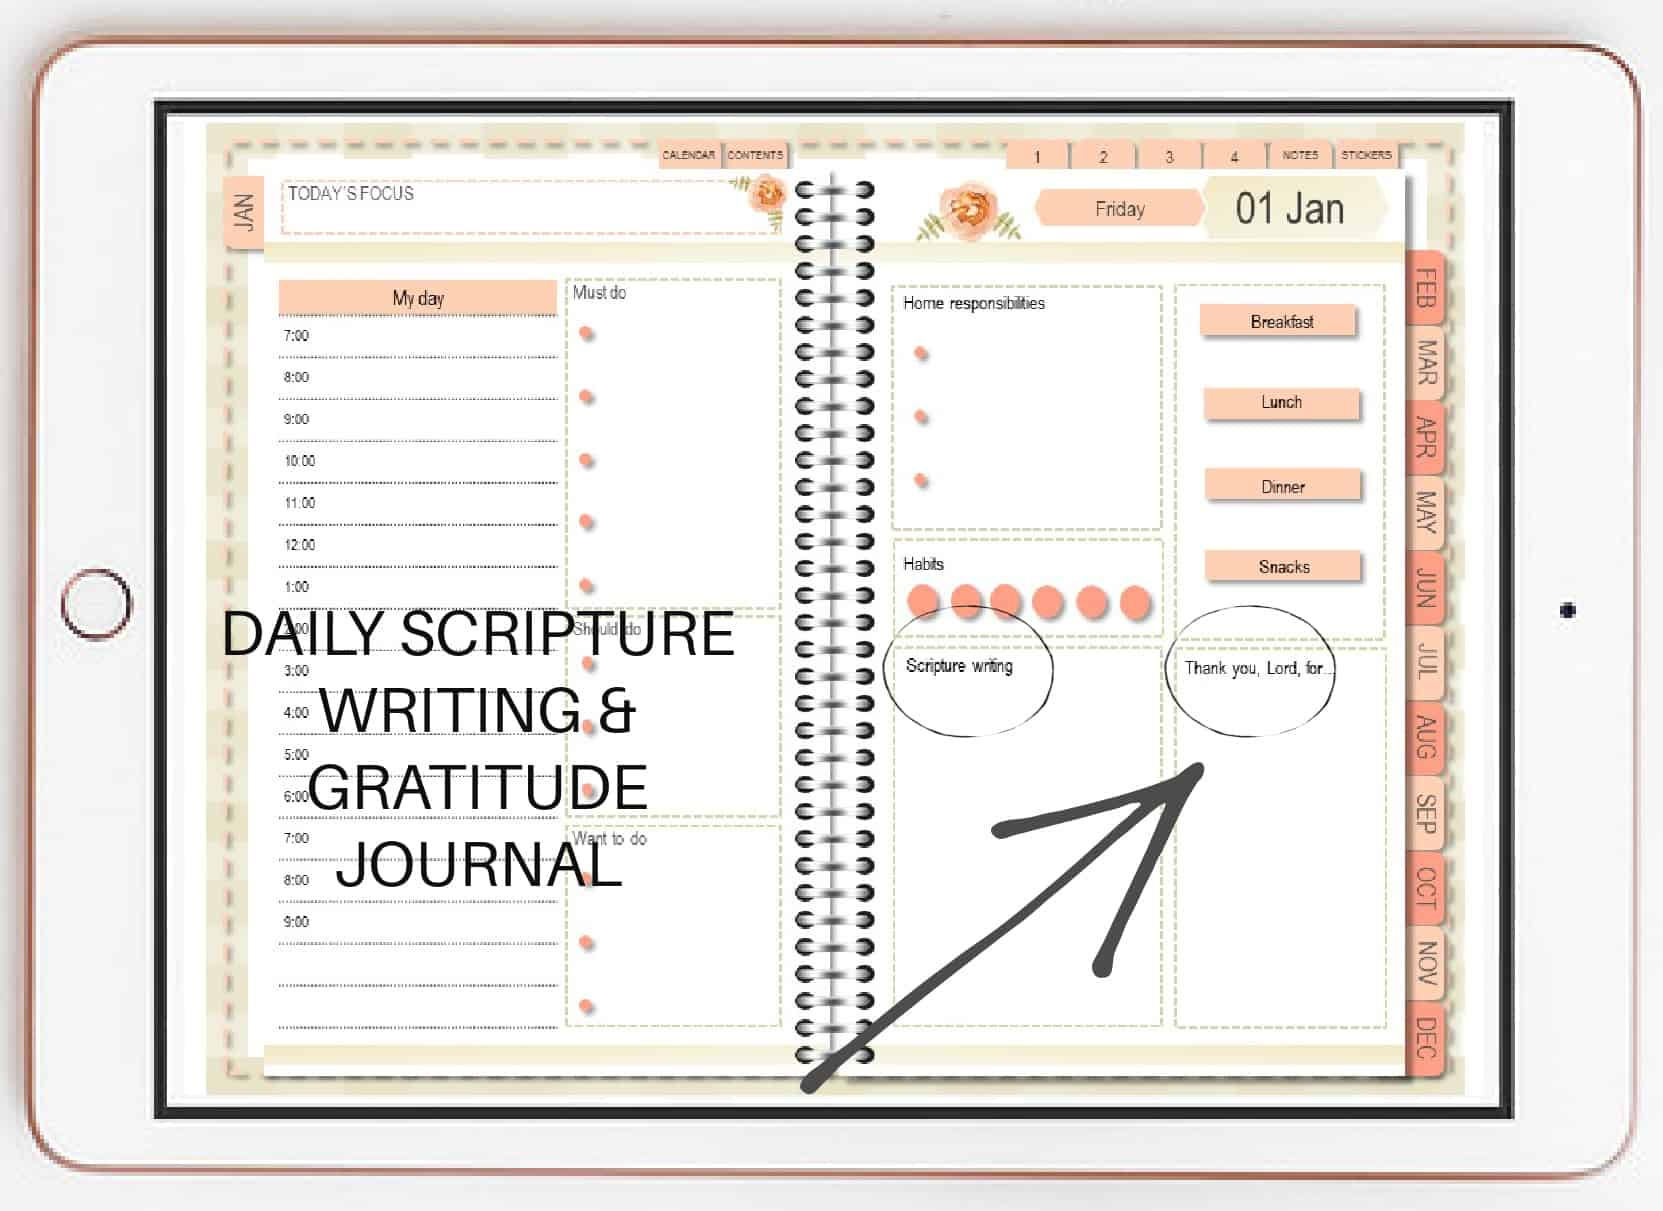 picture of the Abundant Life Planner and the daily Scripture writing and gratitude journal layout